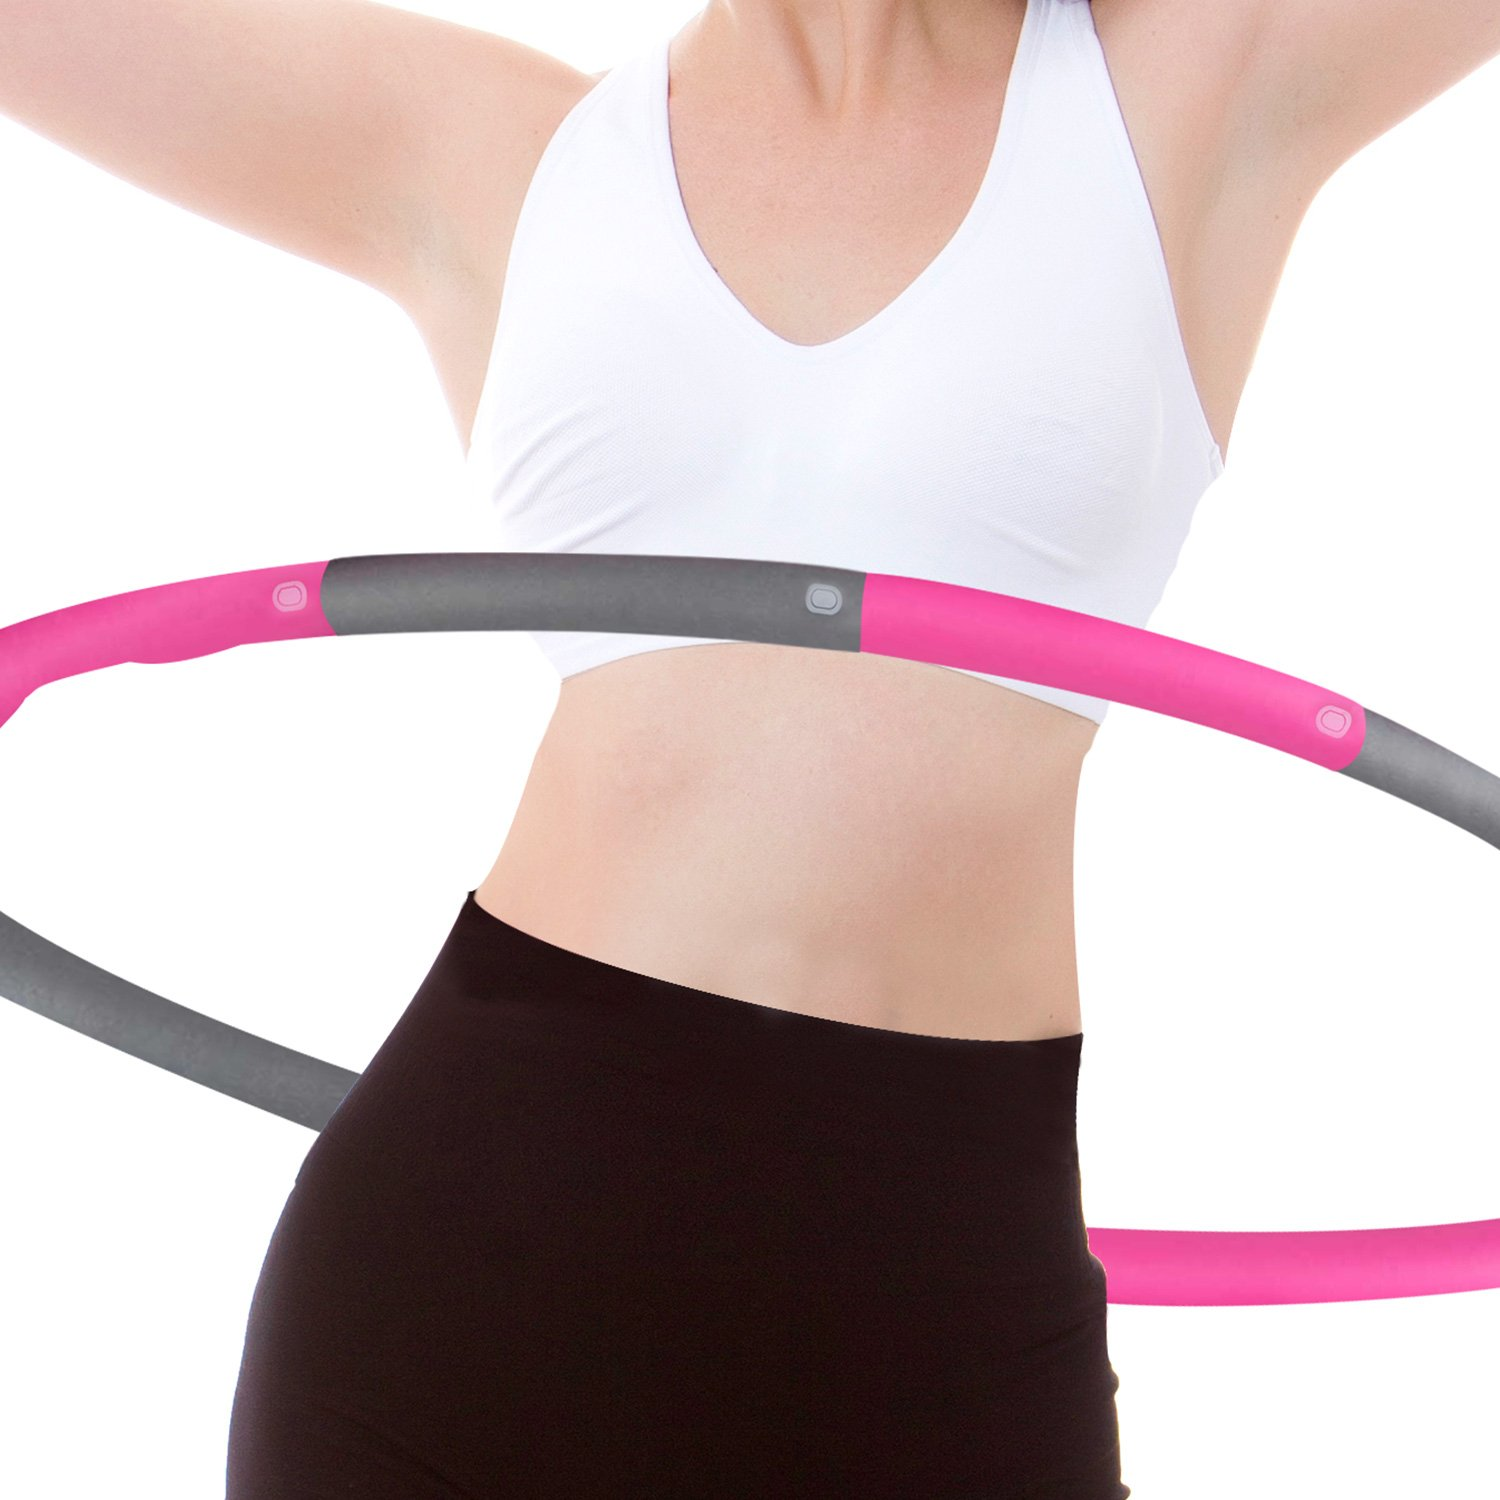 Rioa Fitness Exercise Hula Hoop 2 Pound Weighted Hula Hoop Perfect for Dancing Hot Fitness Workouts and Simply The Funnest Way to Lose Weight Easy to Use Exercise Hoop Fun Easy Way to Workout by Rioa